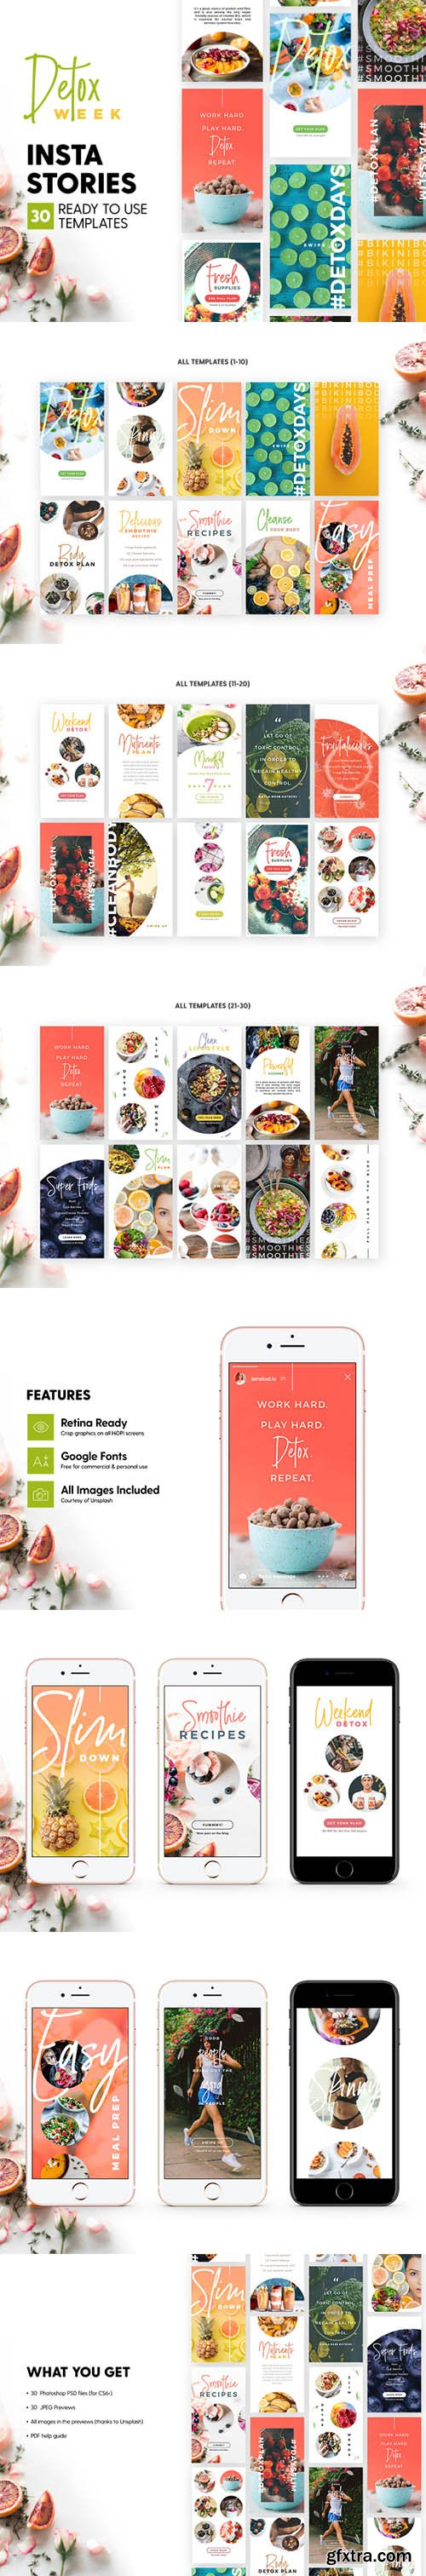 Detox Week Insta Stories - 30 Photoshop Templates for Delicious Instagram Stories